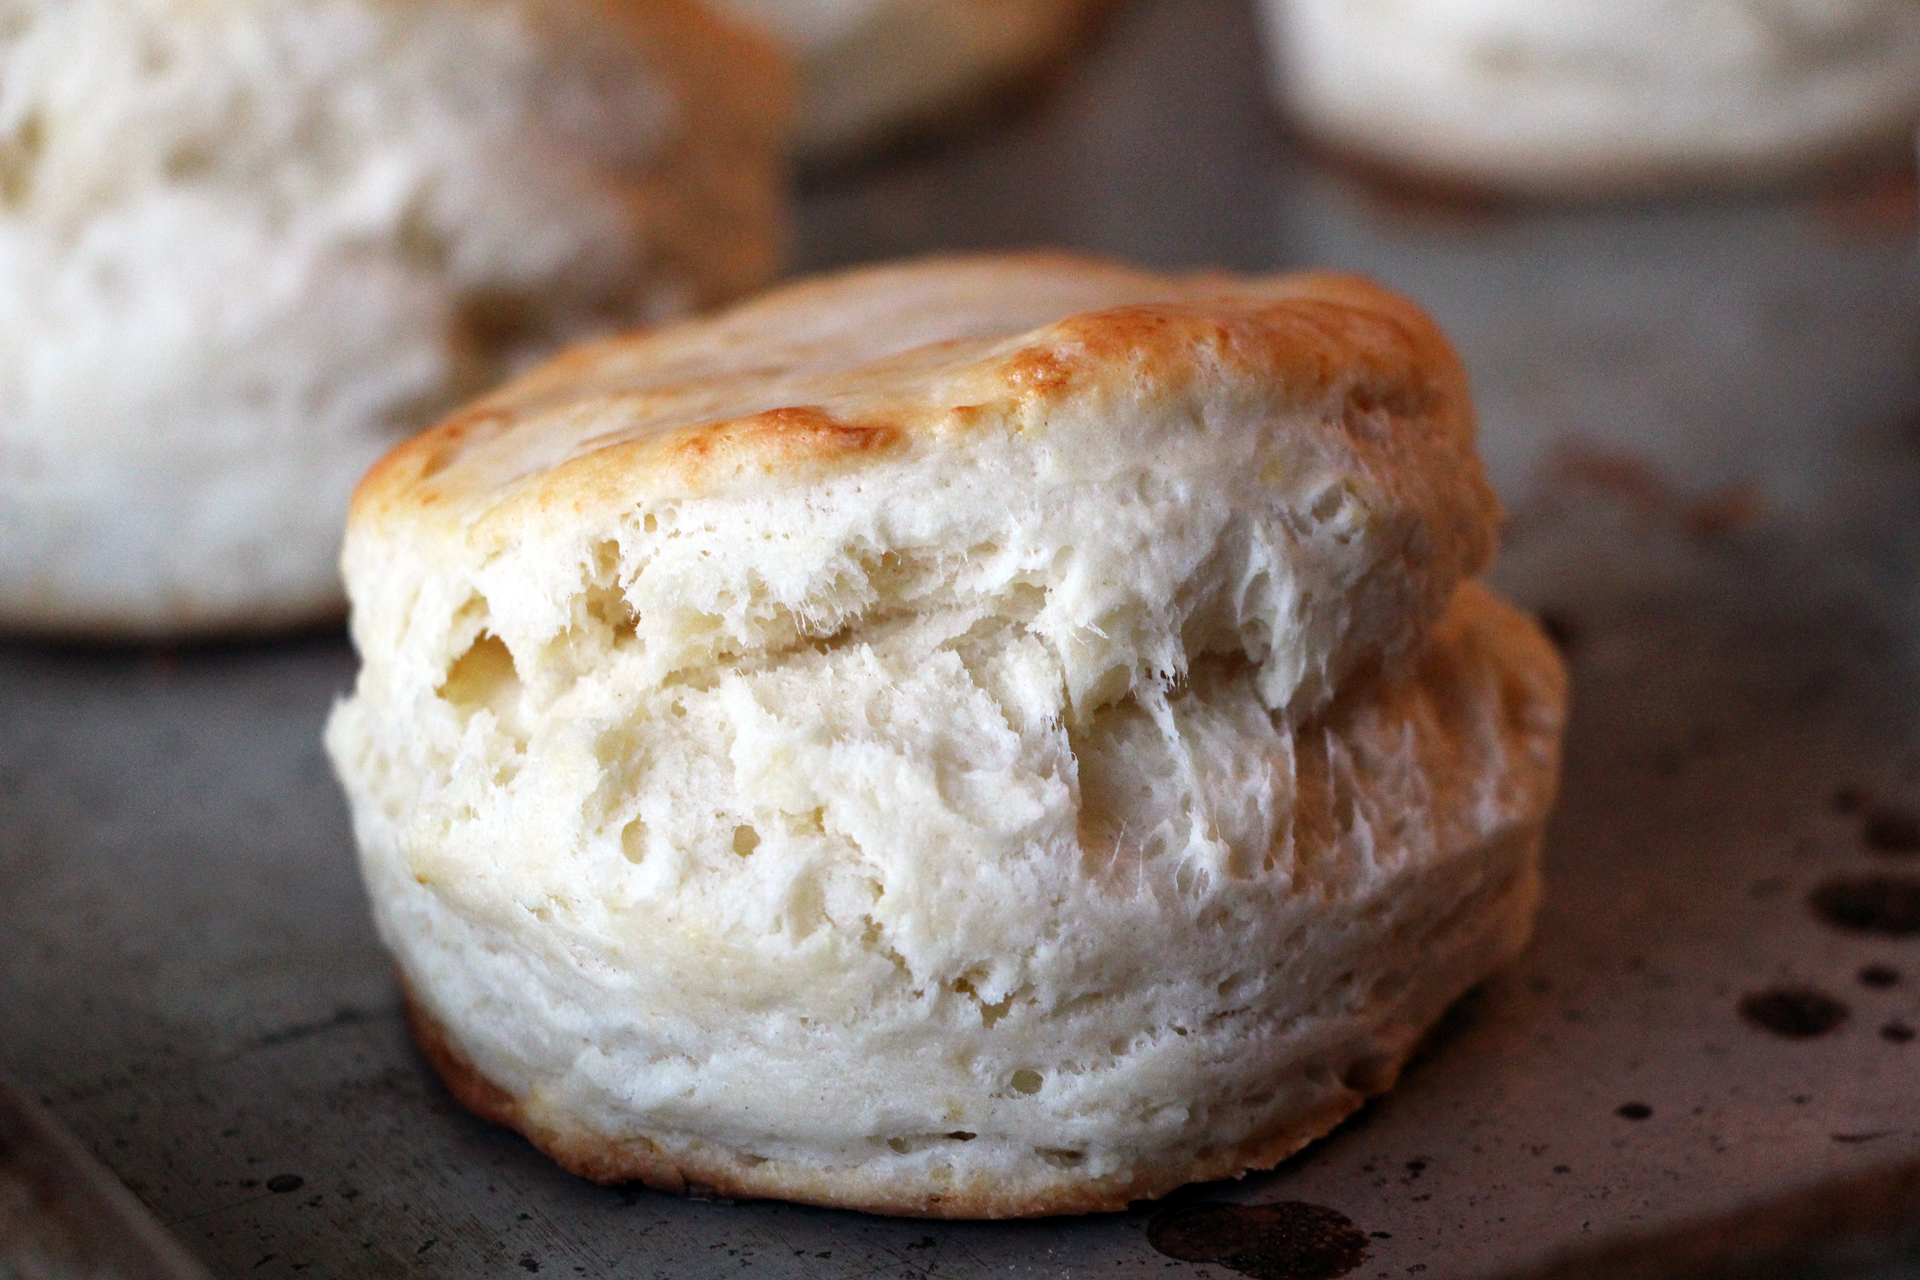 Perfect for Easter Brunch: Lofty Baking Powder Biscuits